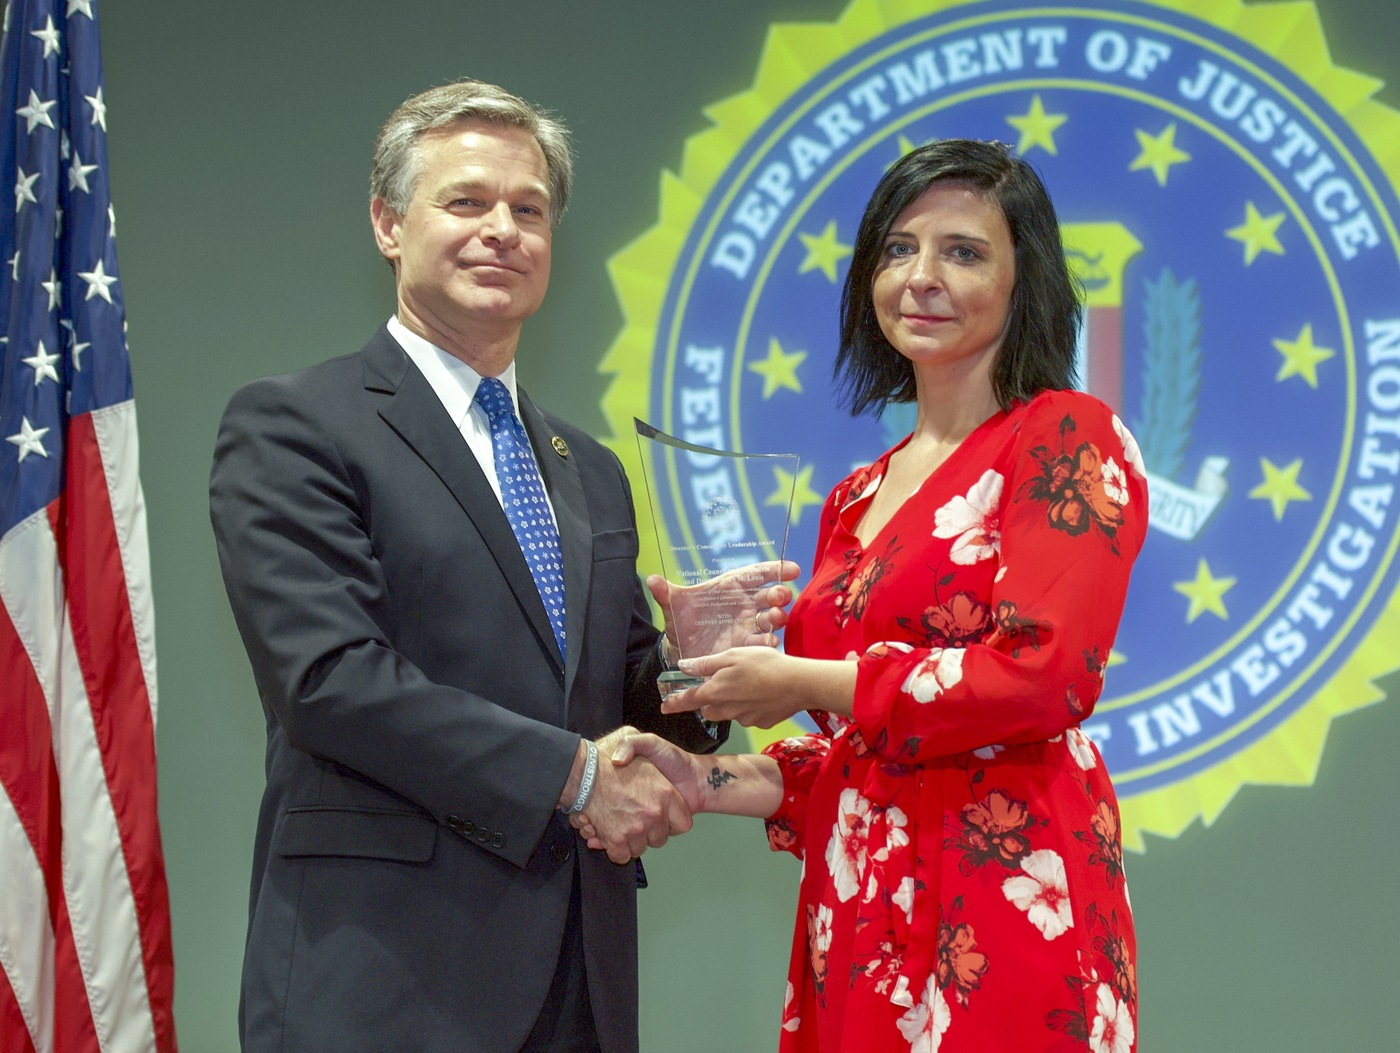 FBI Director Christopher Wray presents St. Louis Division recipient the National Council on Alcoholism and Drug Abuse – St. Louis (represented by Nichole Dawsey) with the Director's Community Leadership Award (DCLA) at a ceremony at FBI Headquarters on May 3, 2019.